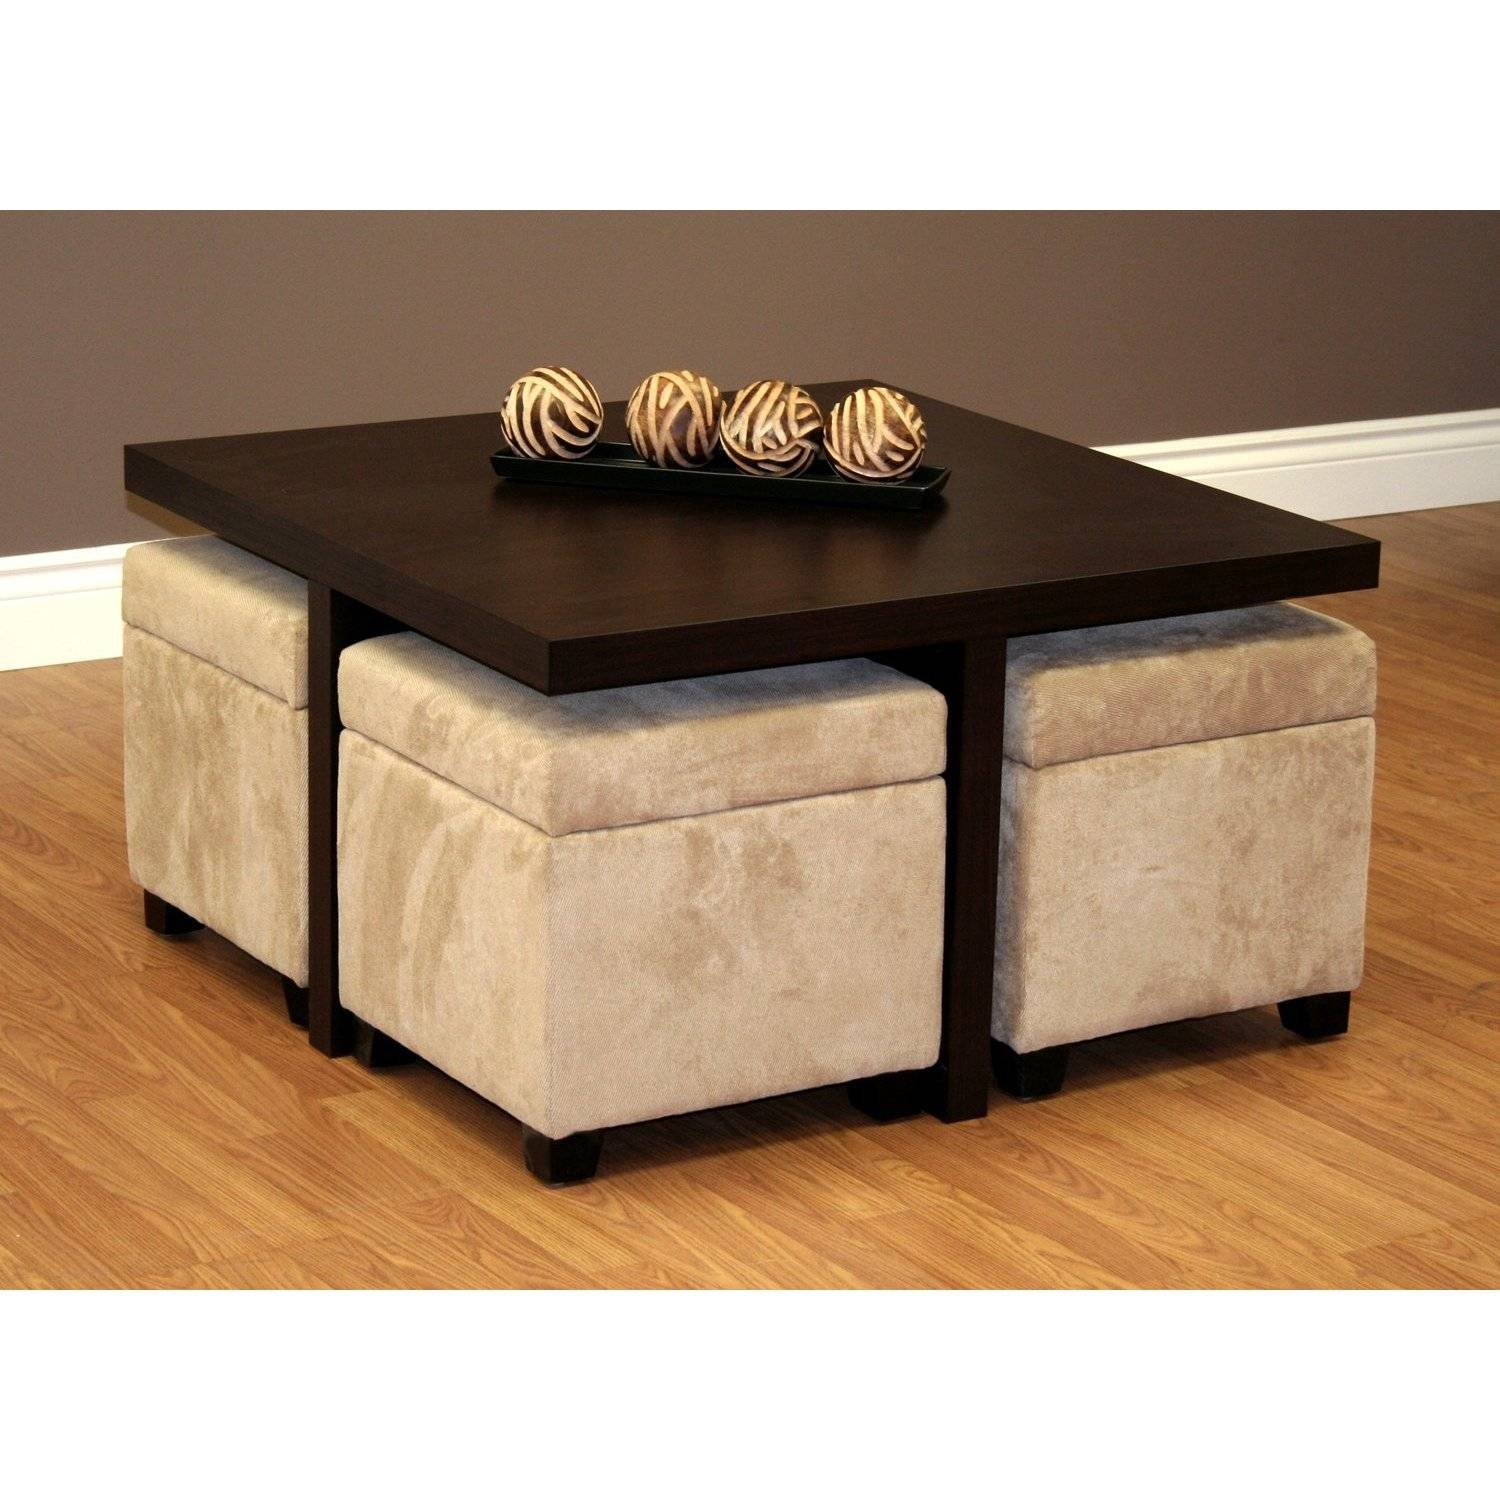 31 Inspirations of Square Coffee Tables With Storage Cubes